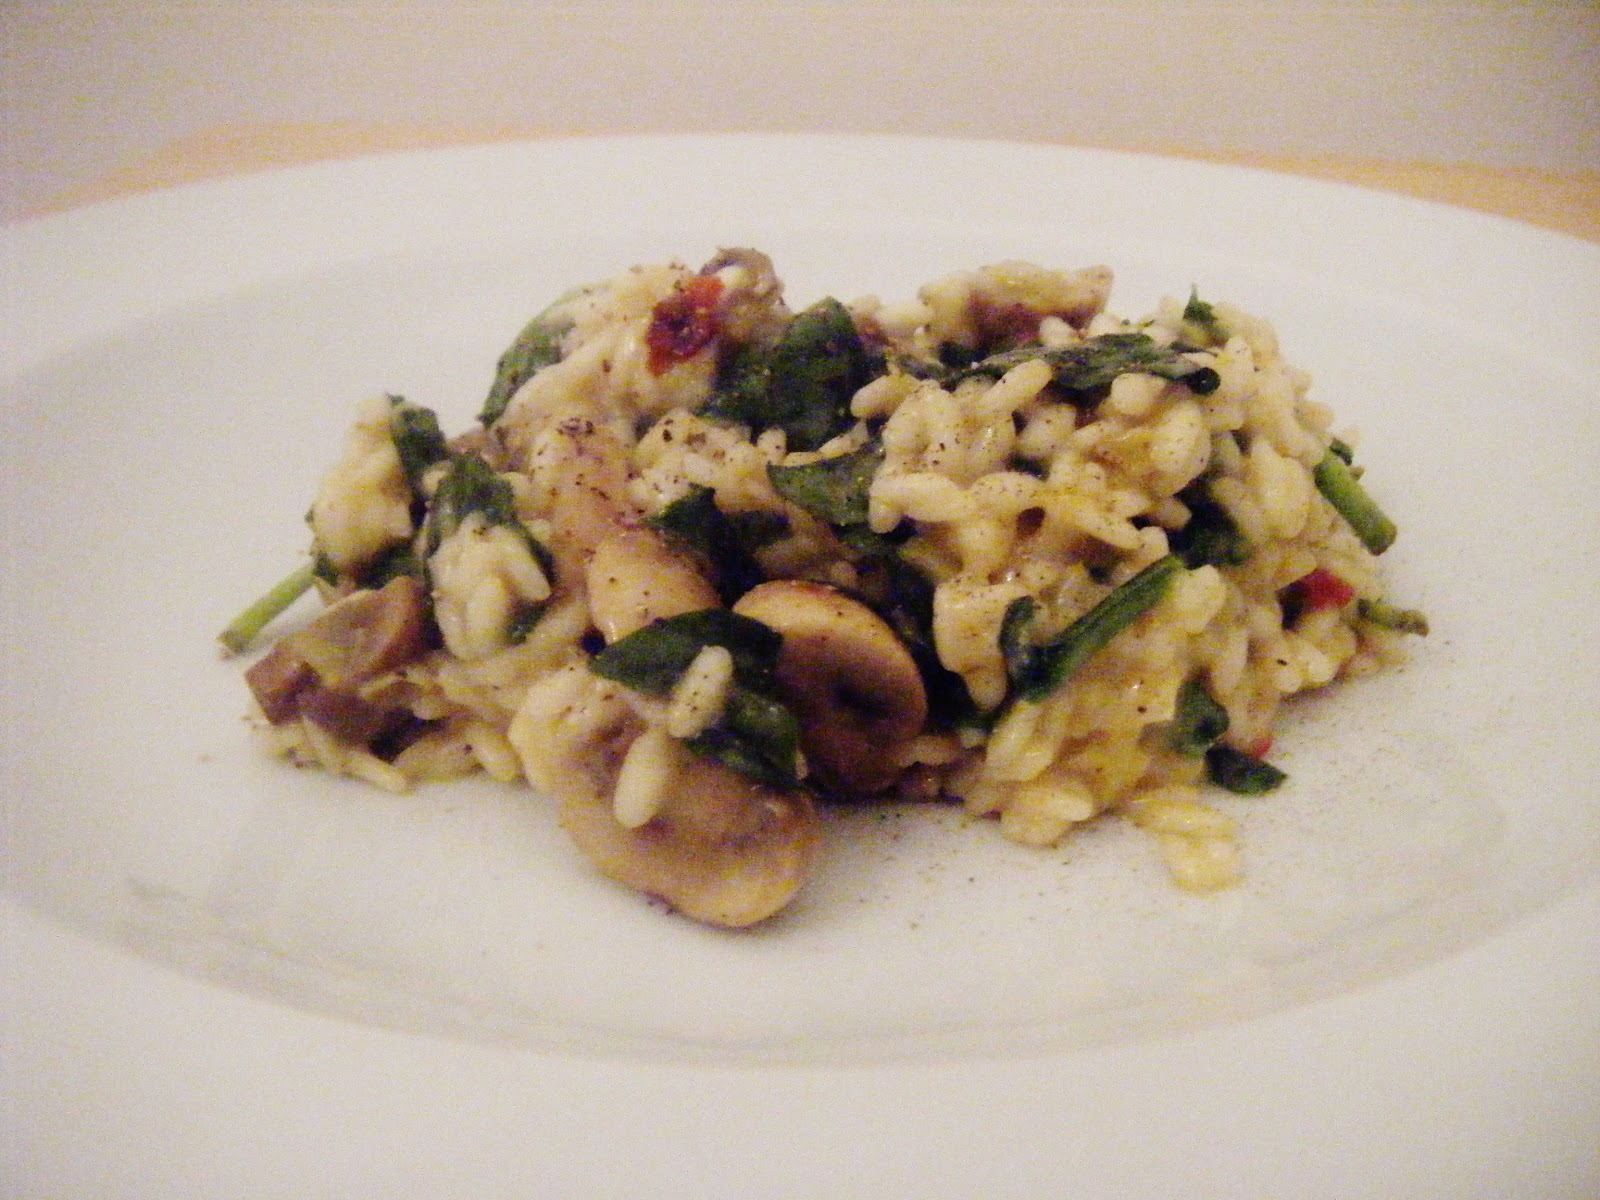 the Best Recipes: Mushroom, Leek and Spinach Risotto